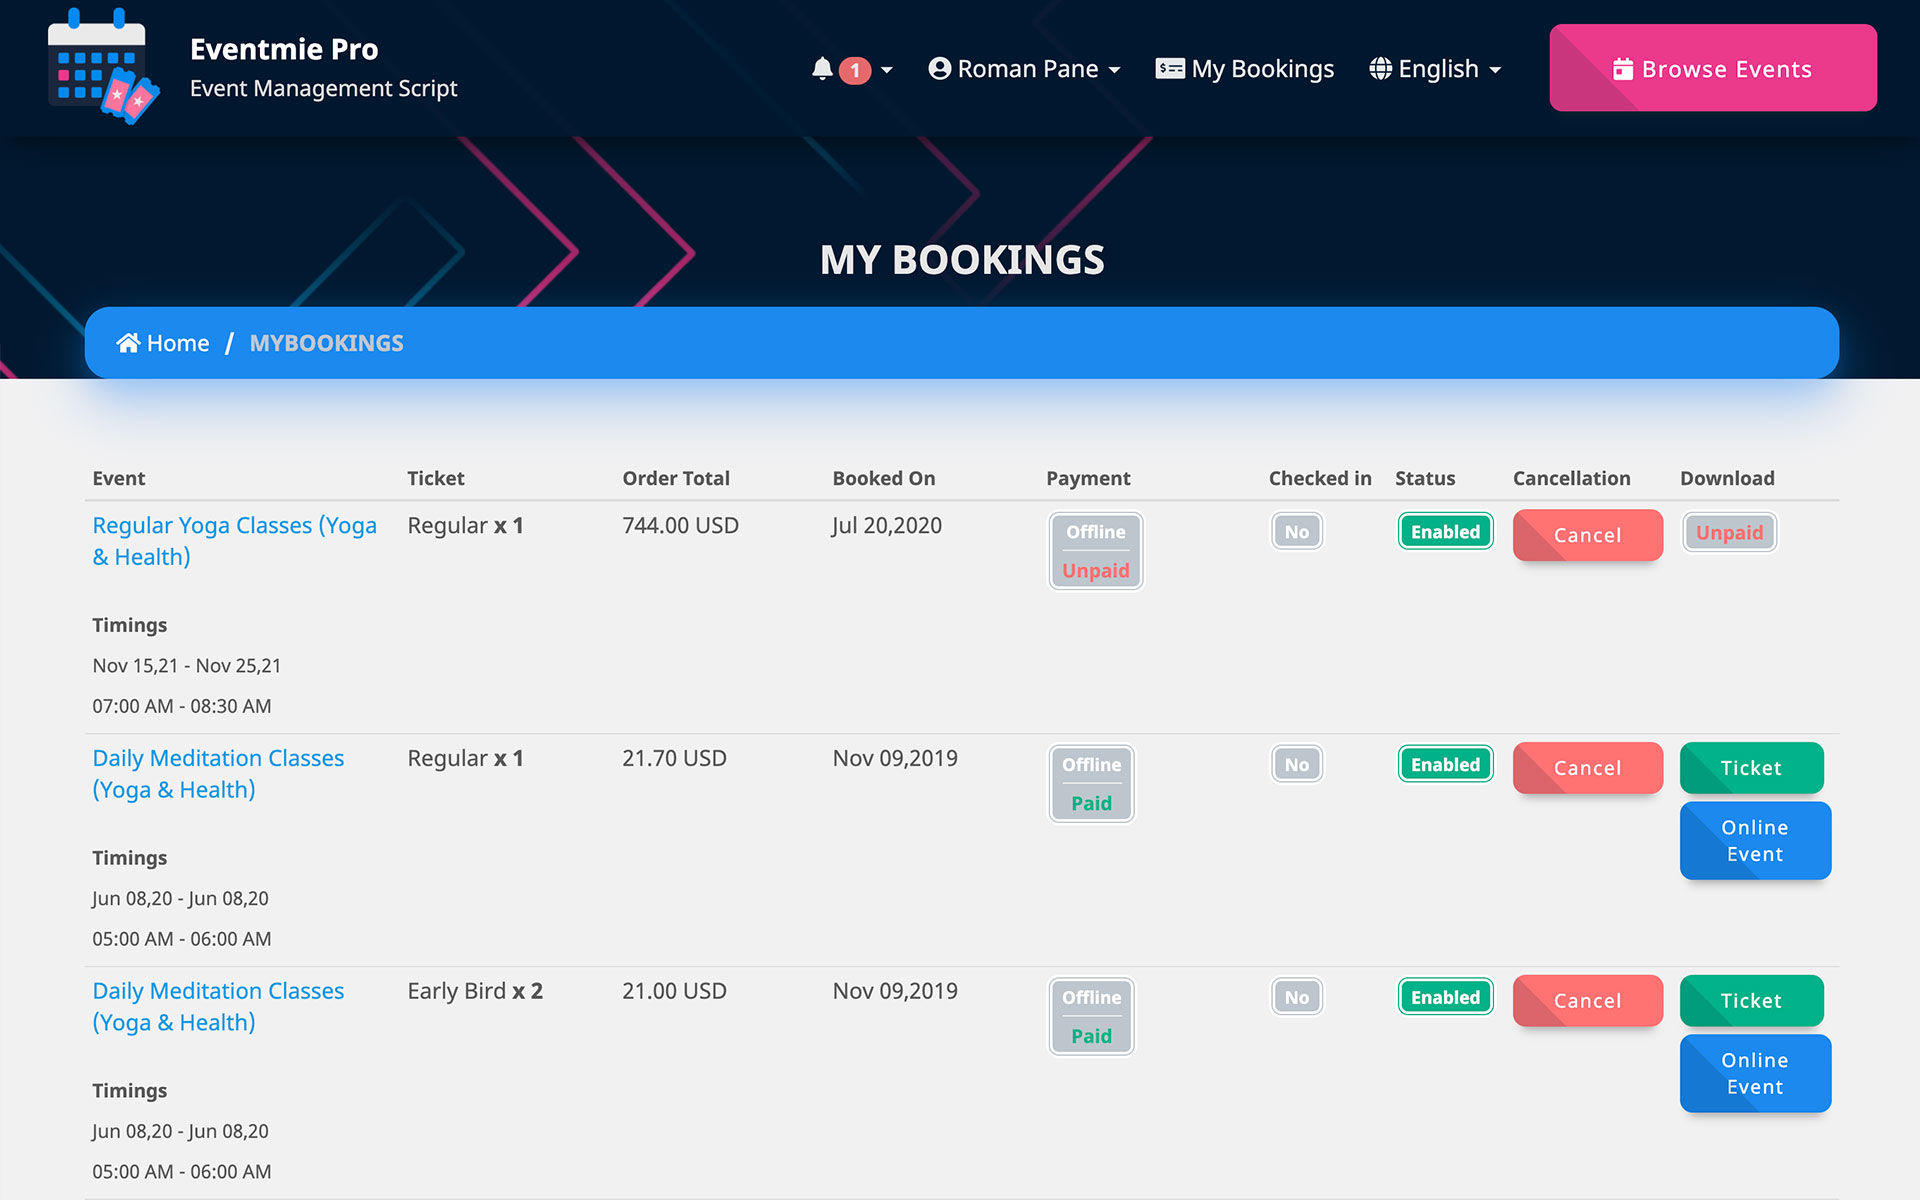 Customer bookings page